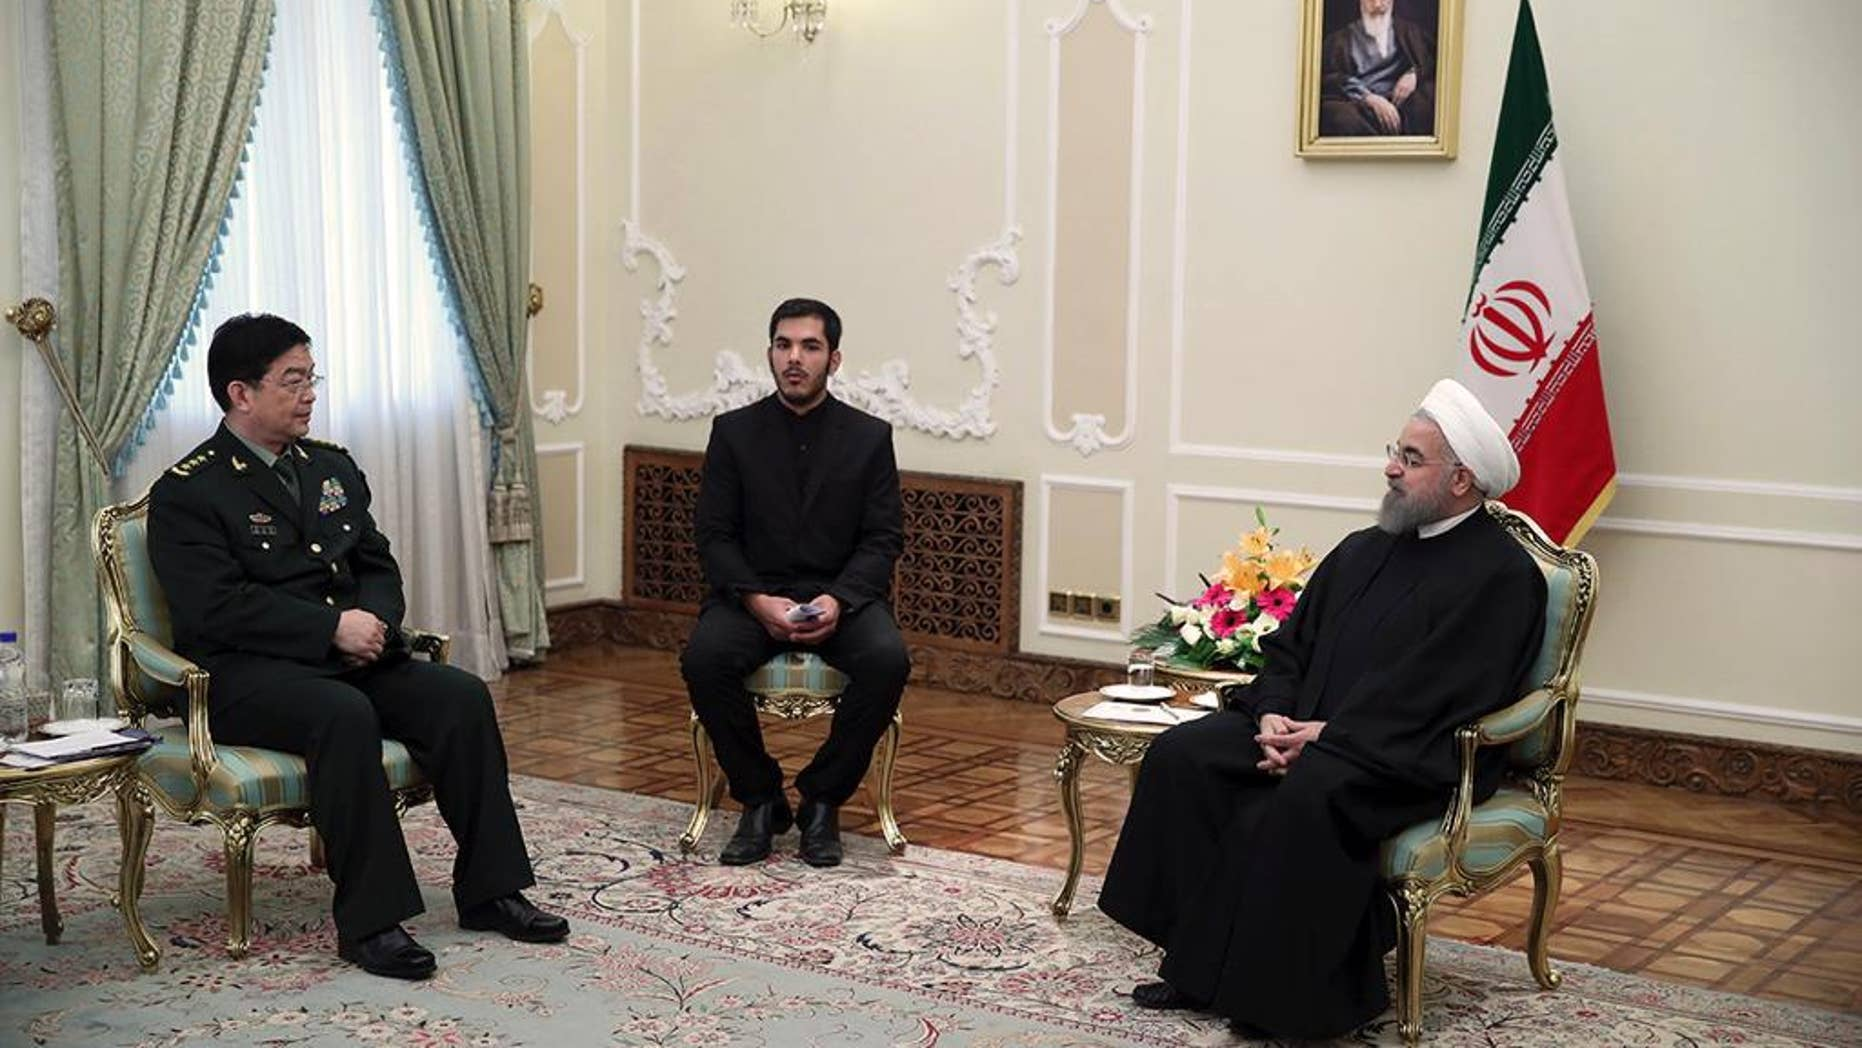 In this photo released by an official website of the office of the Iranian Presidency, President Hassan Rouhani, right, meets with Chinese Defense Minister Chang Wanquan, left, at his office, in Tehran, Iran, Tueday, Nov. 15, 2016. An unidentified interpreter sits at center. (Iranian Presidency Office via AP)